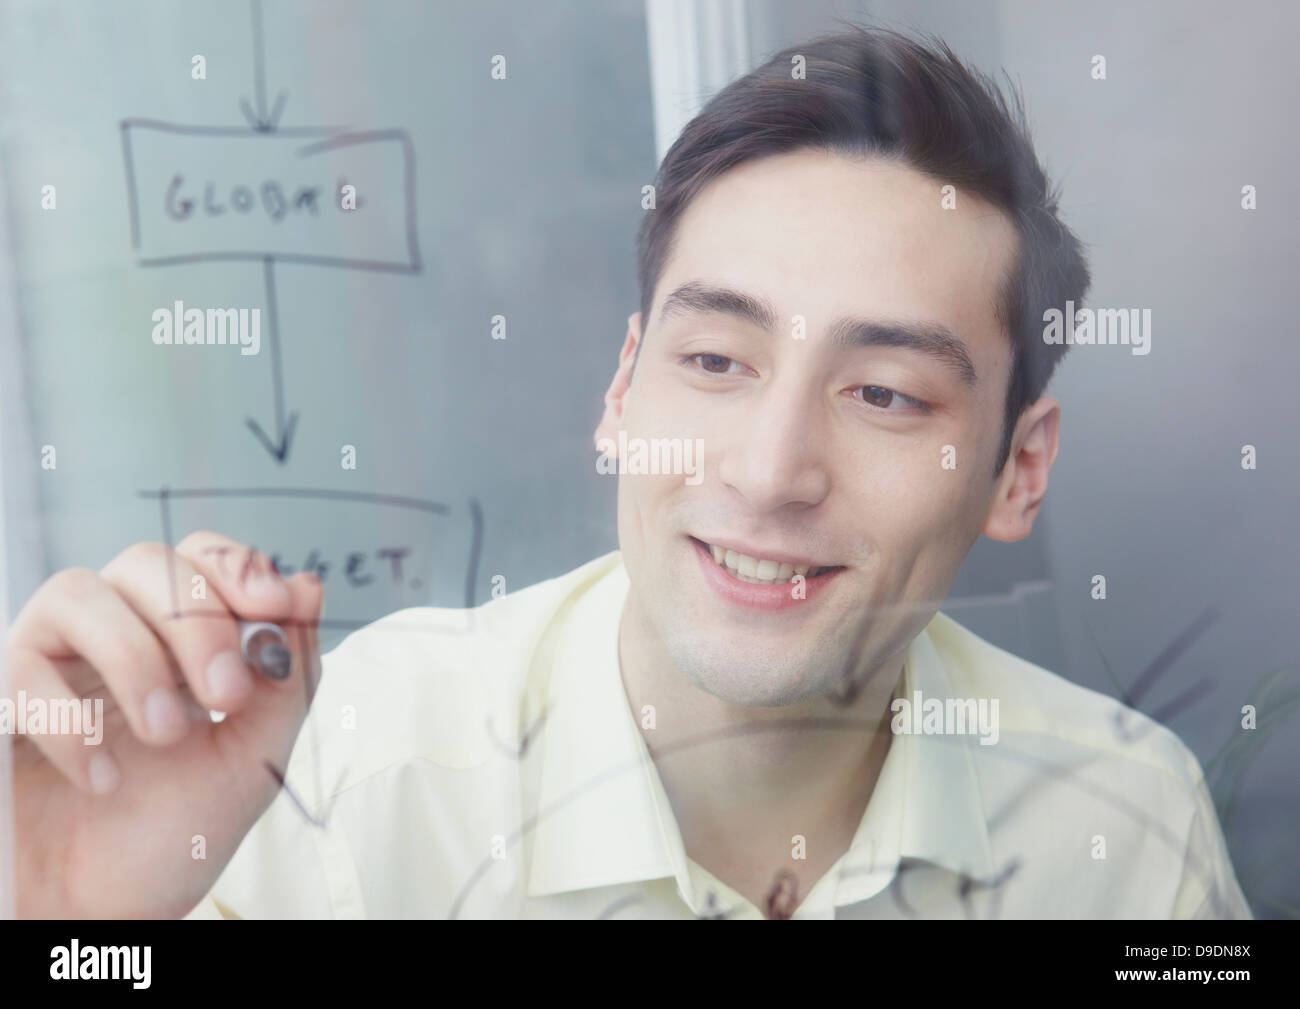 Man writing on glass with marker pen - Stock Image